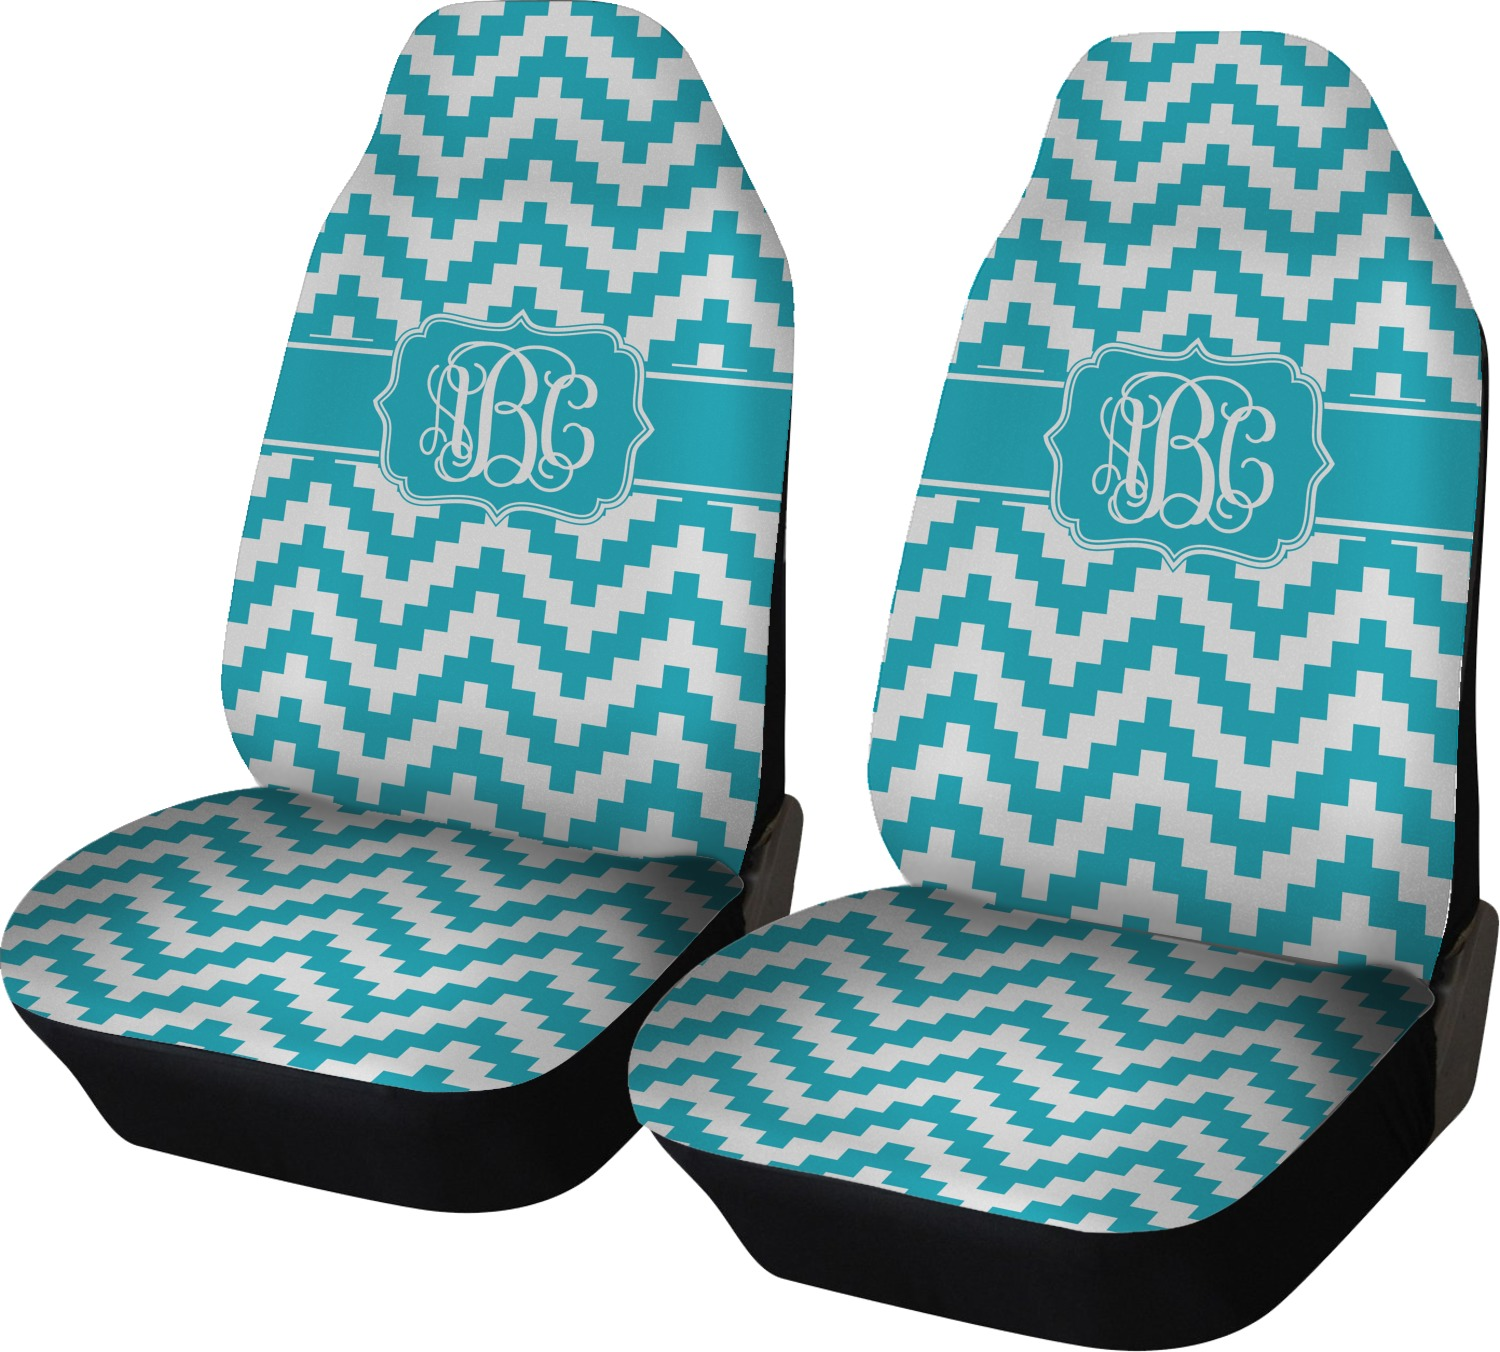 Pixelated Chevron Car Seat Covers Set Of Two